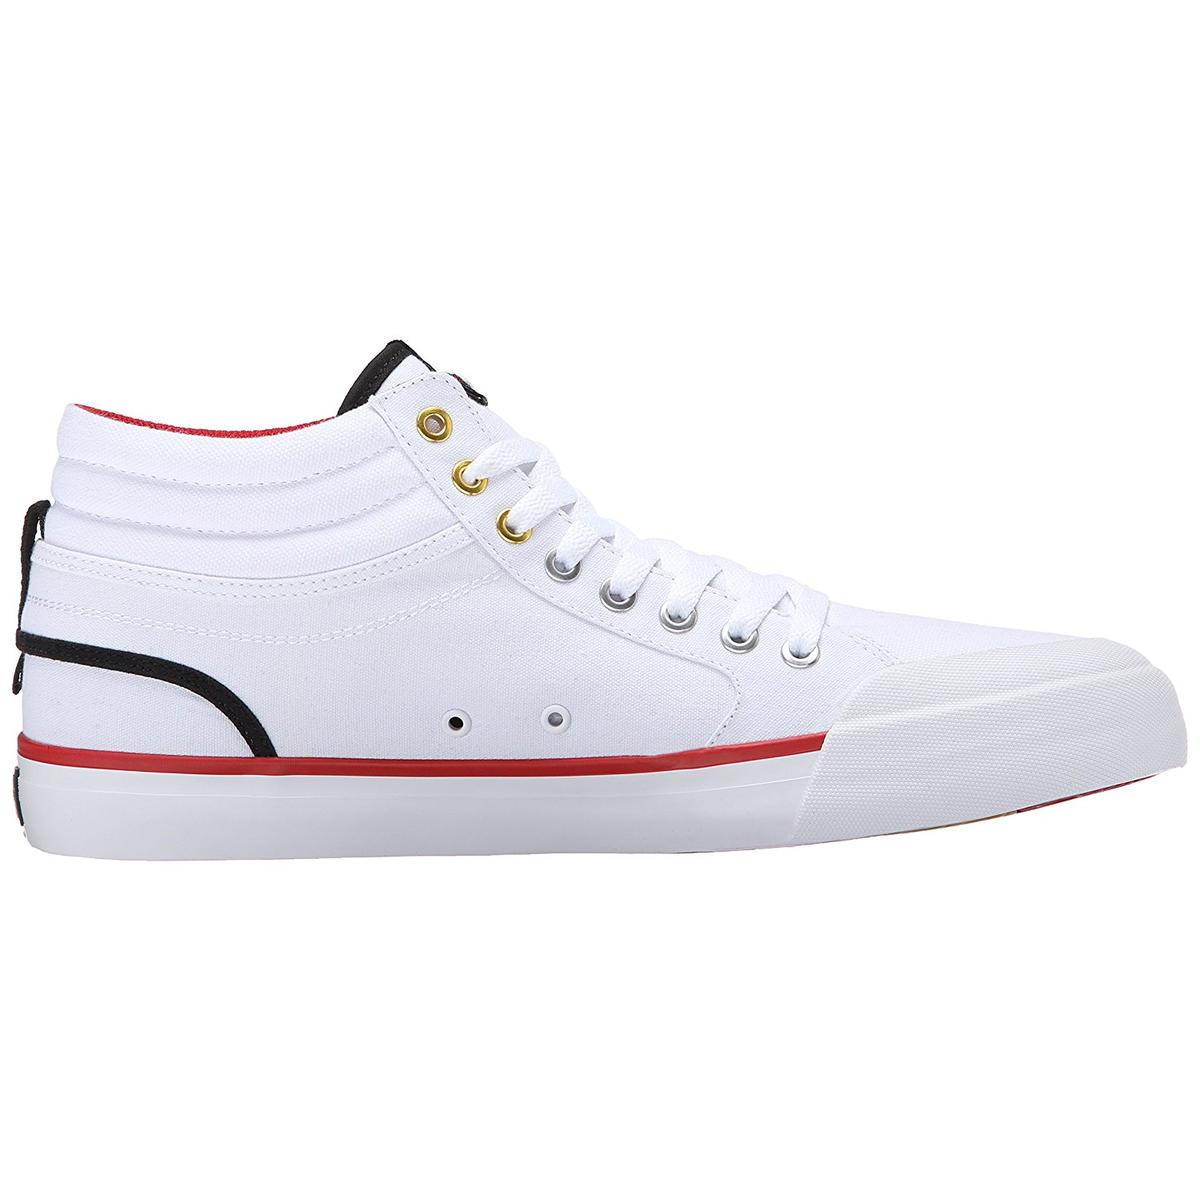 DC Shoes Mens Evan Smith Hi TX